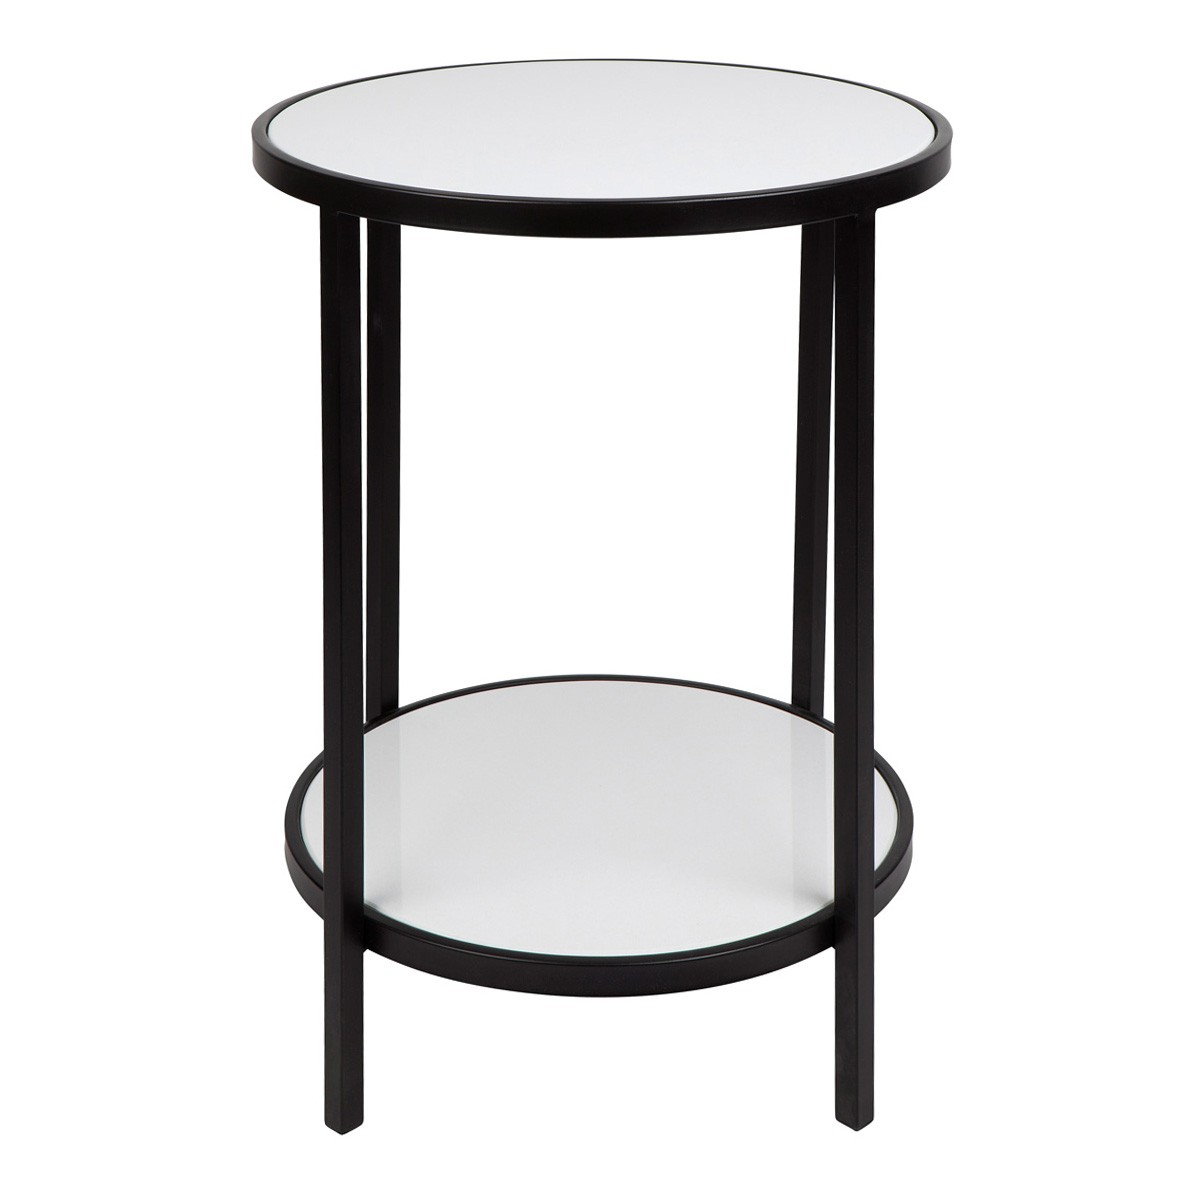 Cocktail Stone Top Iron Round Side Table, Black